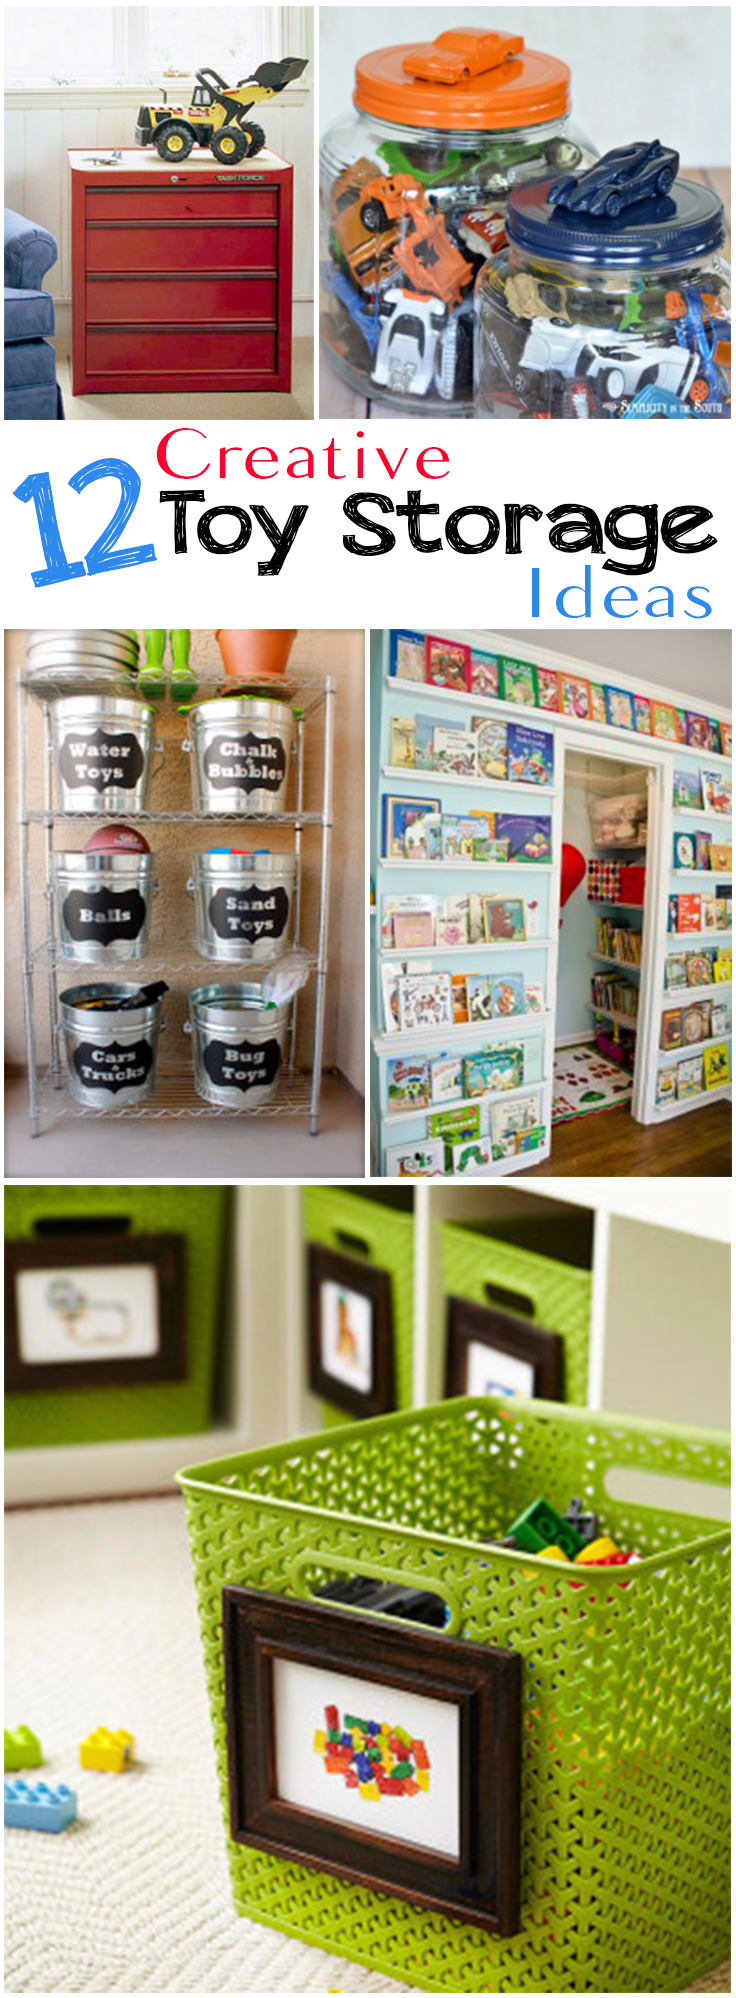 12 Creative Toy Storage Ideas Page 8 Of 13 Picky Stitch